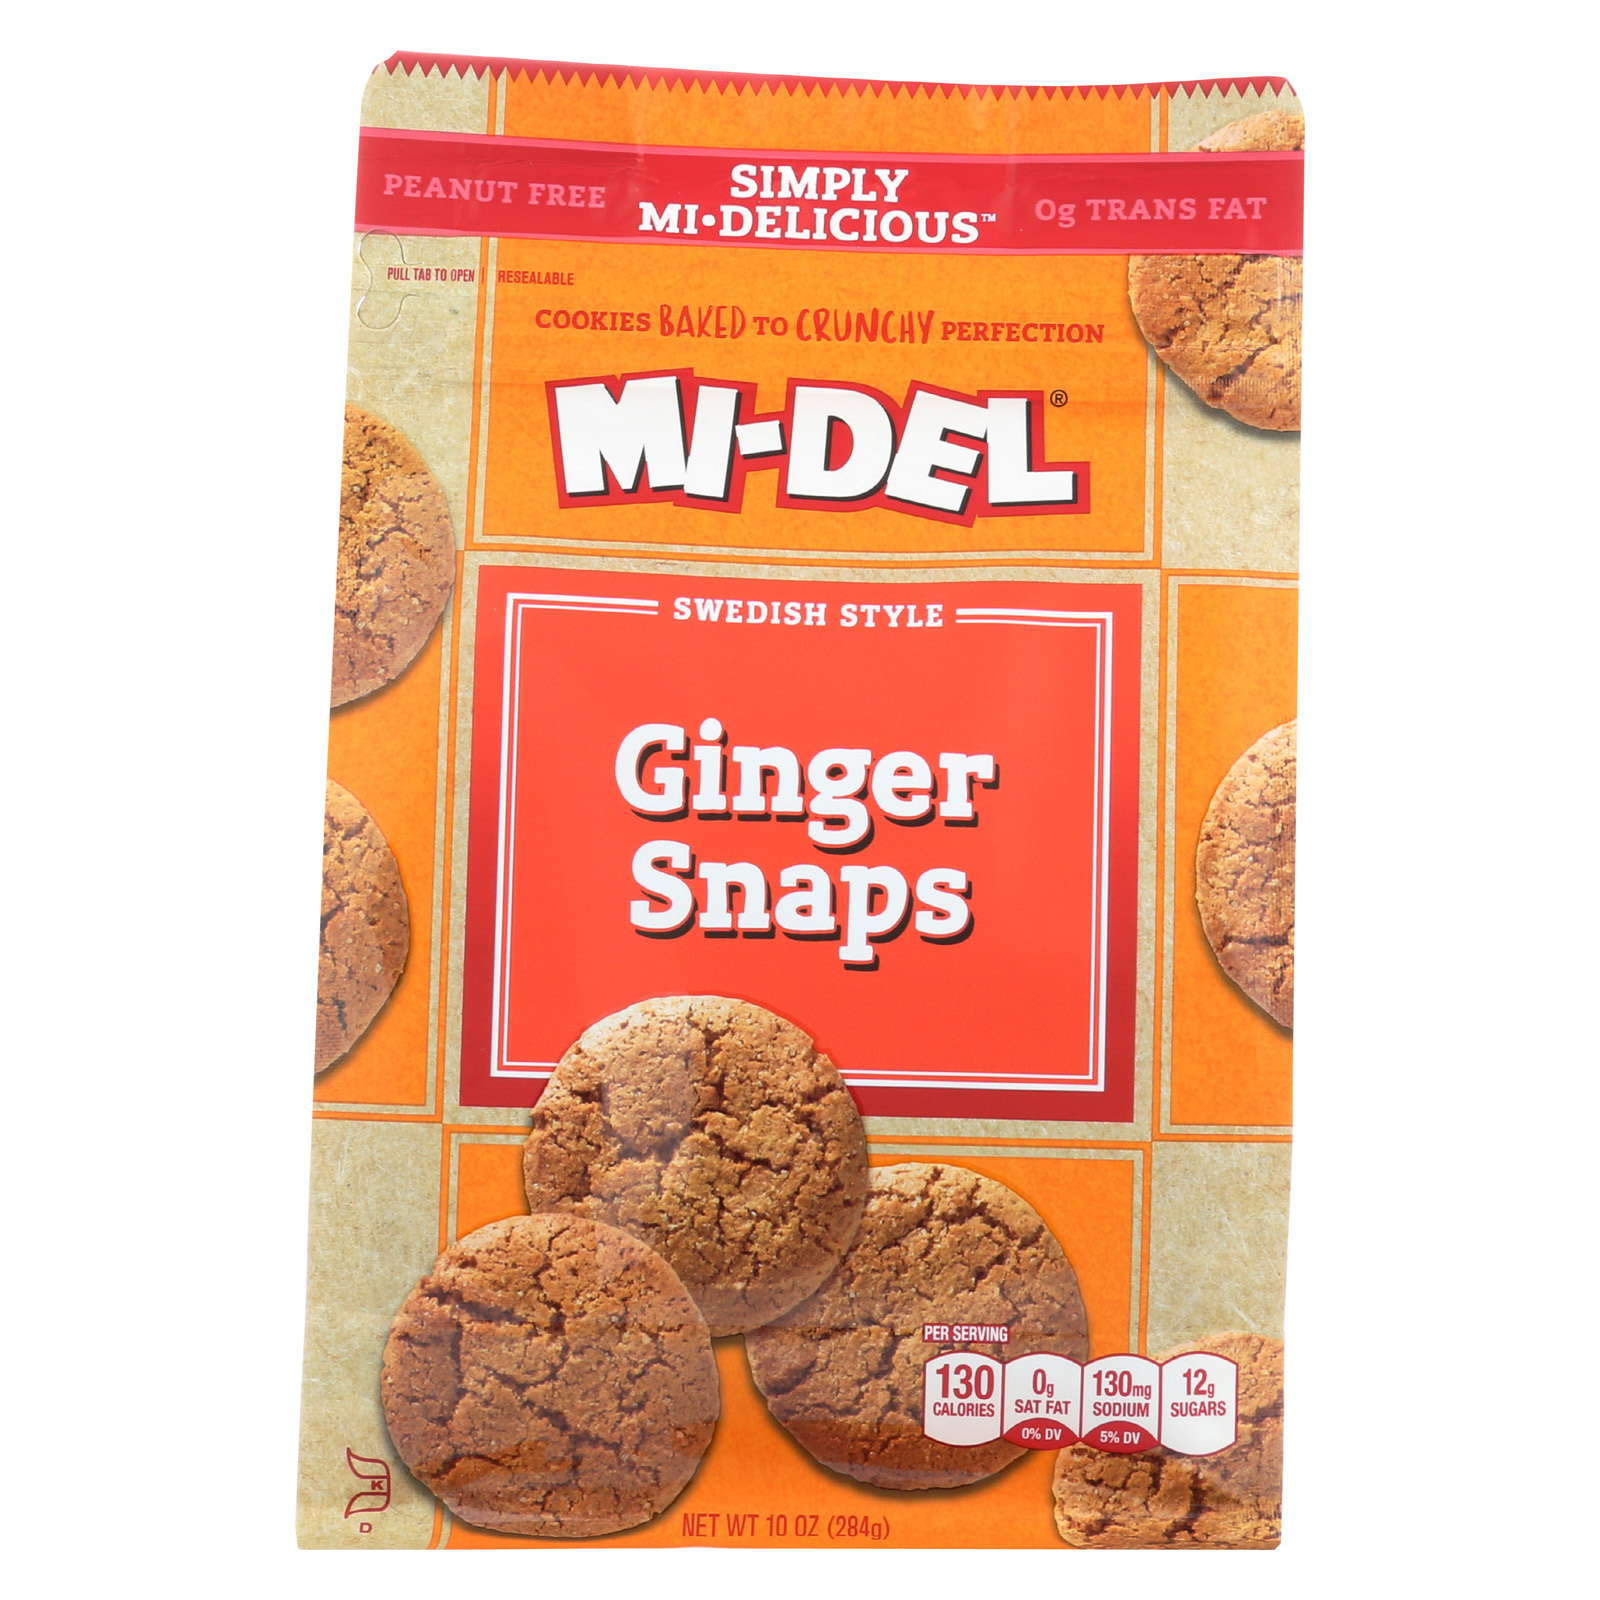 Midel Cookies - Ginger Snaps - Case of 8 - 10 oz